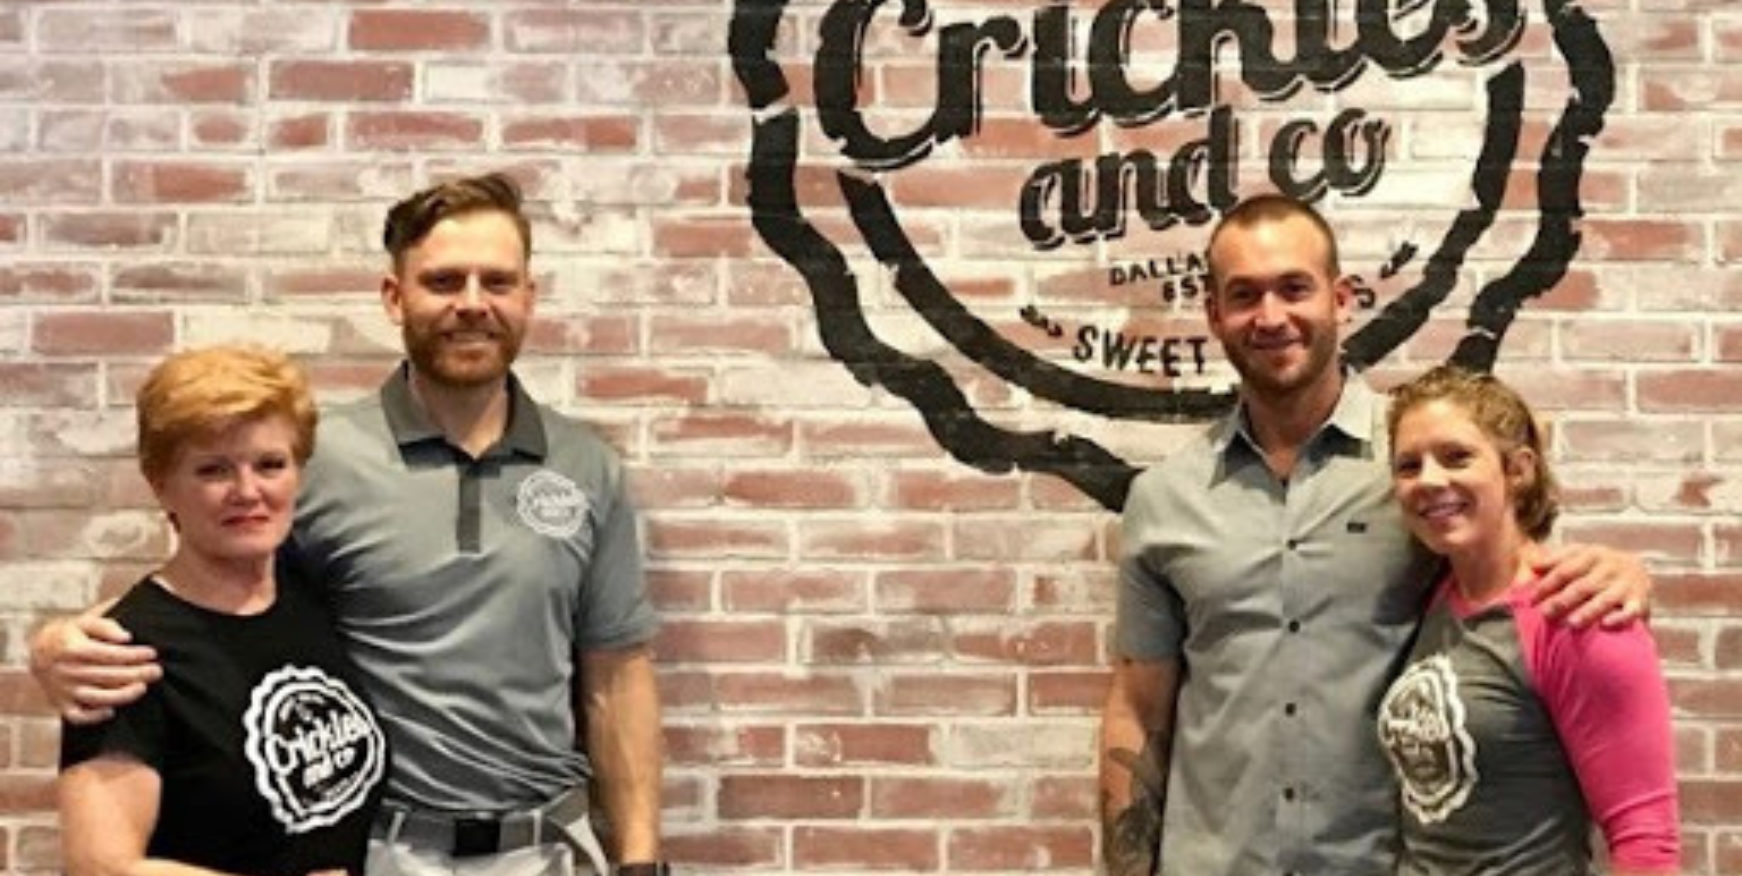 cohost catering partners Crickles & Co owners